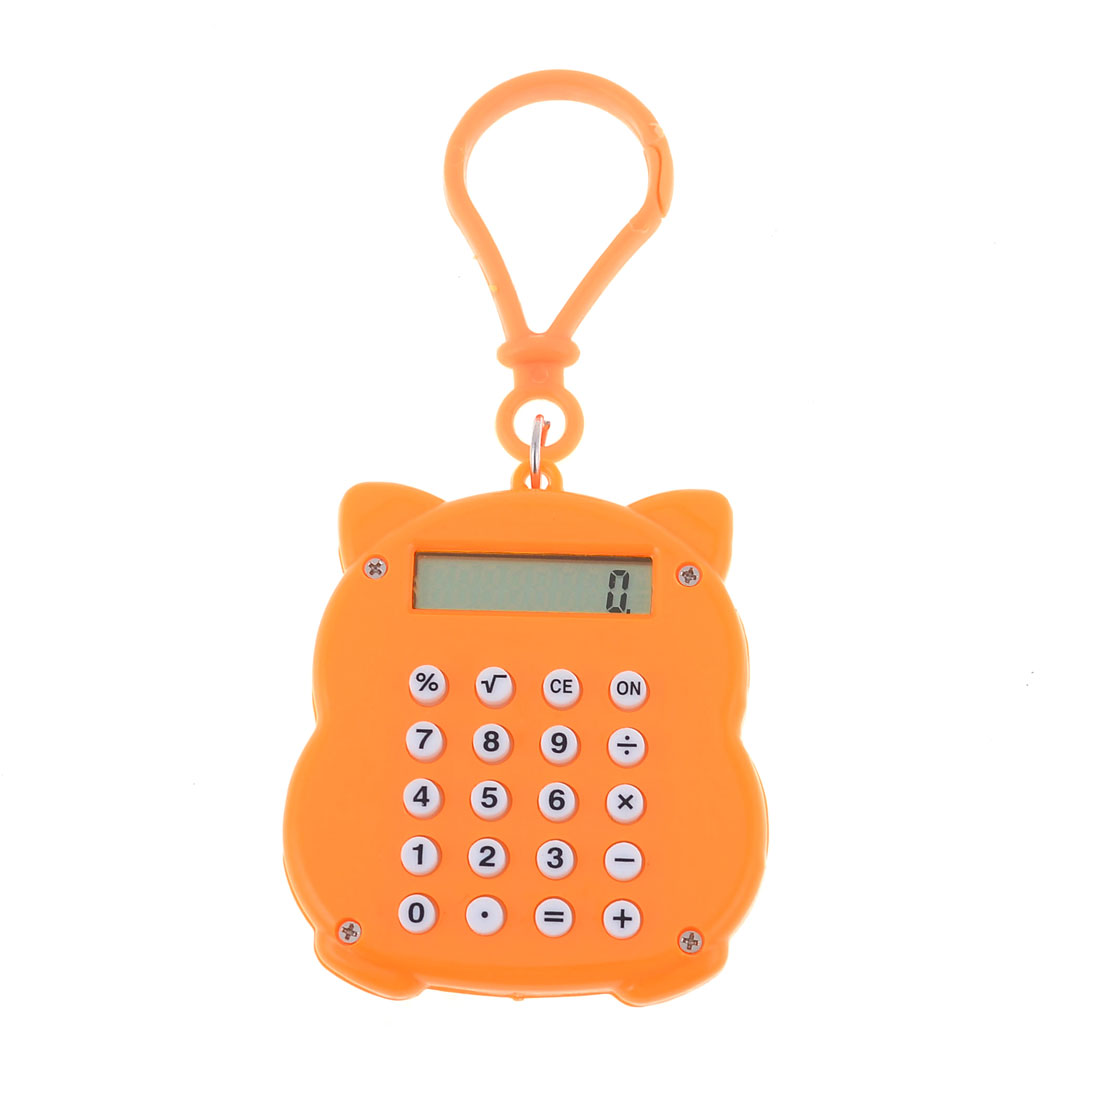 Keyring Decor Orange Plastic Shell Maneki Neko Sahpe Mini Calculator